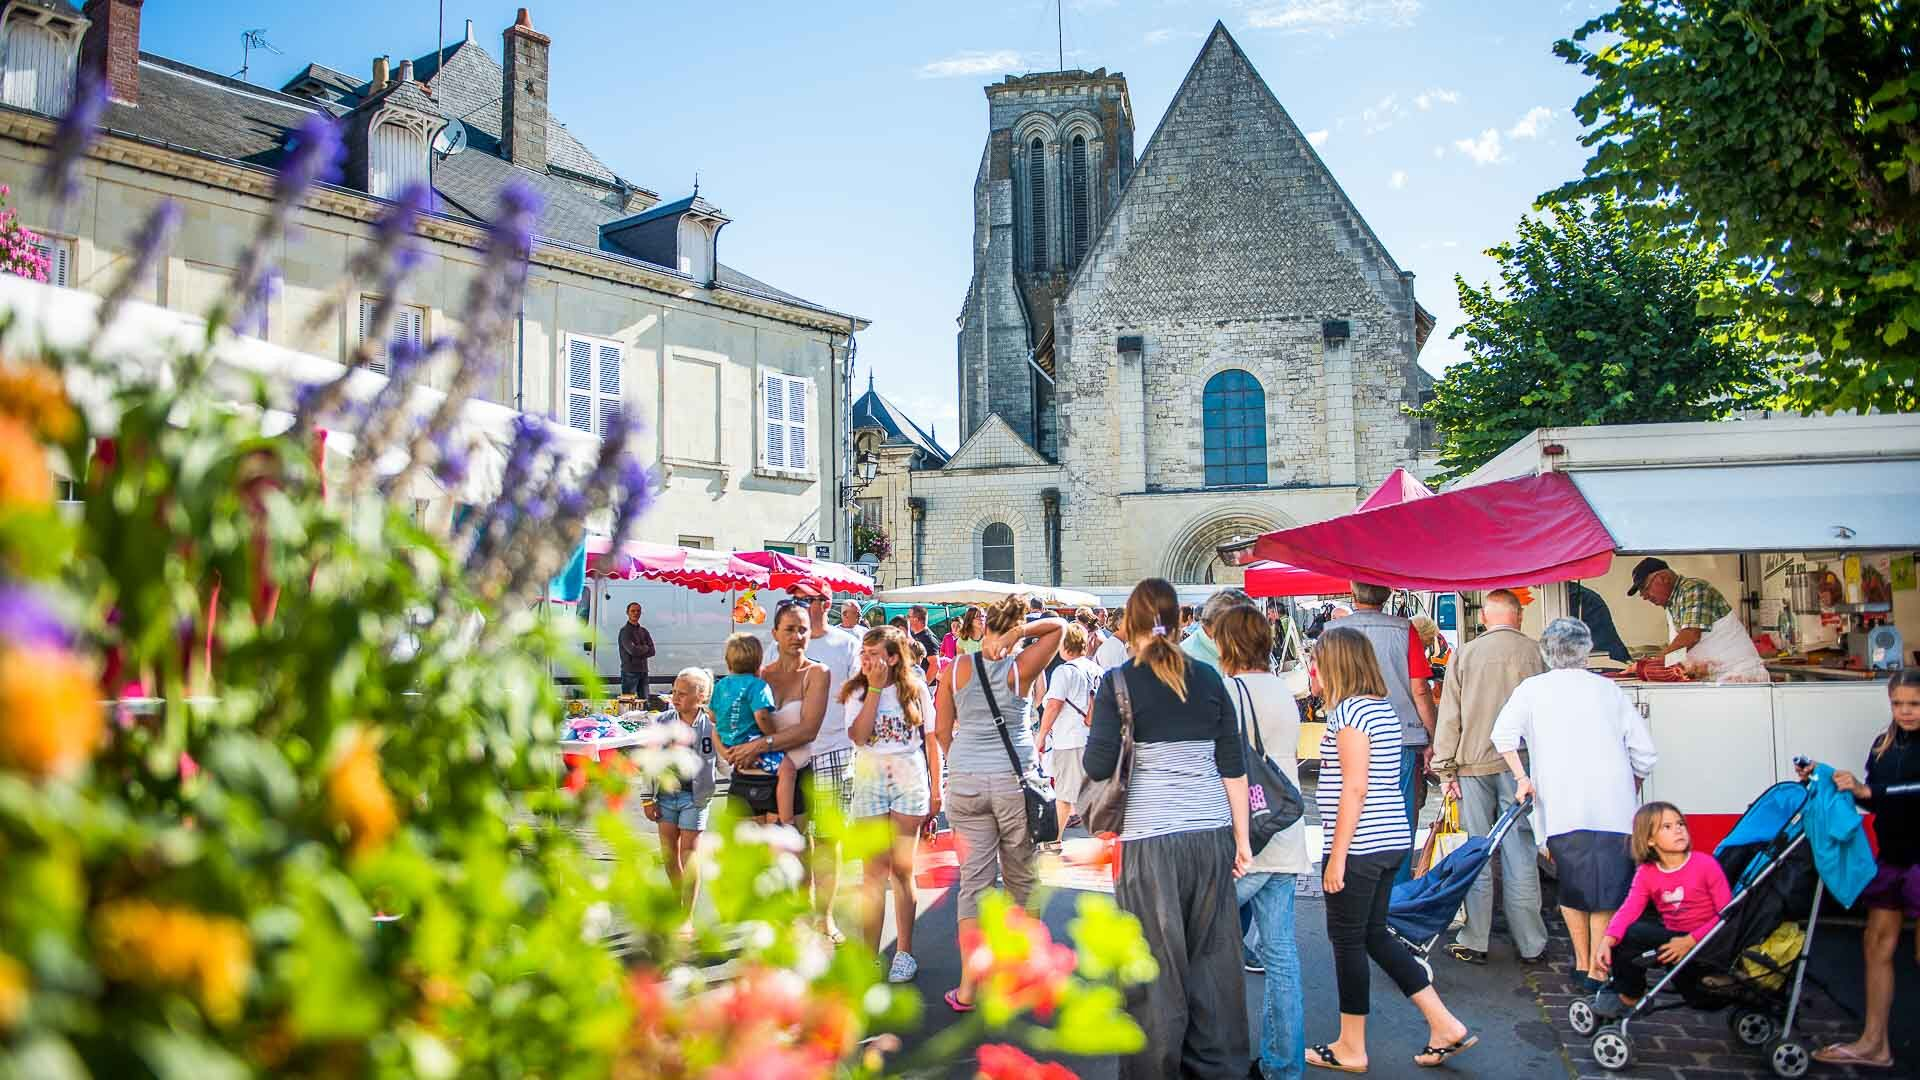 Markets in the Loire Valley